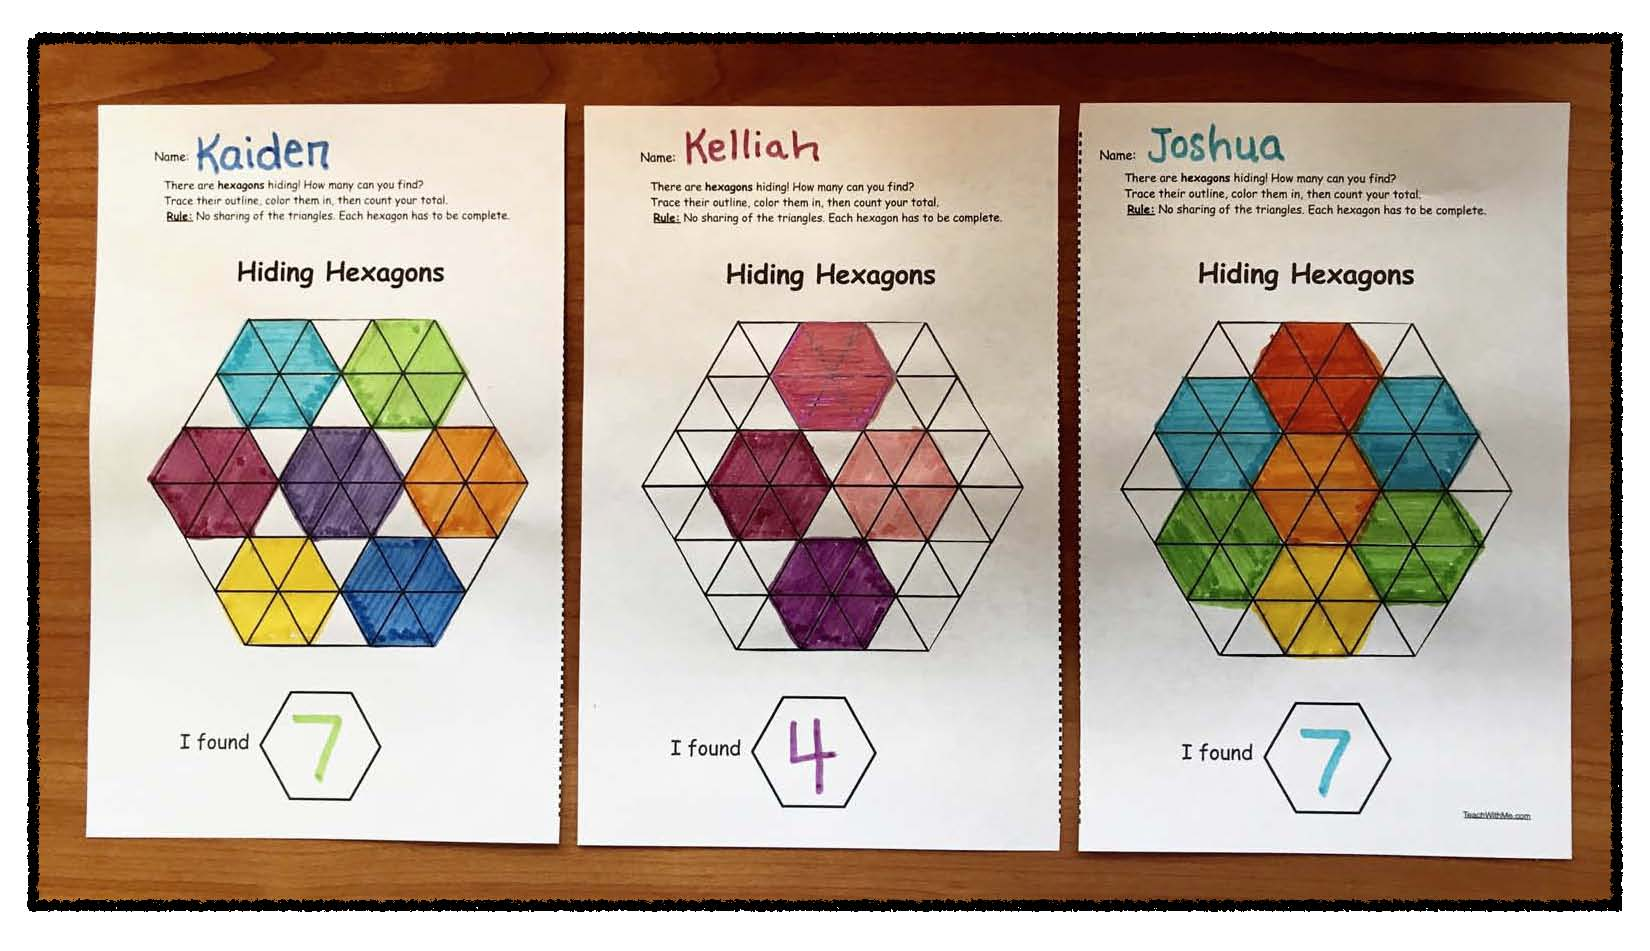 Hiding hexagon game